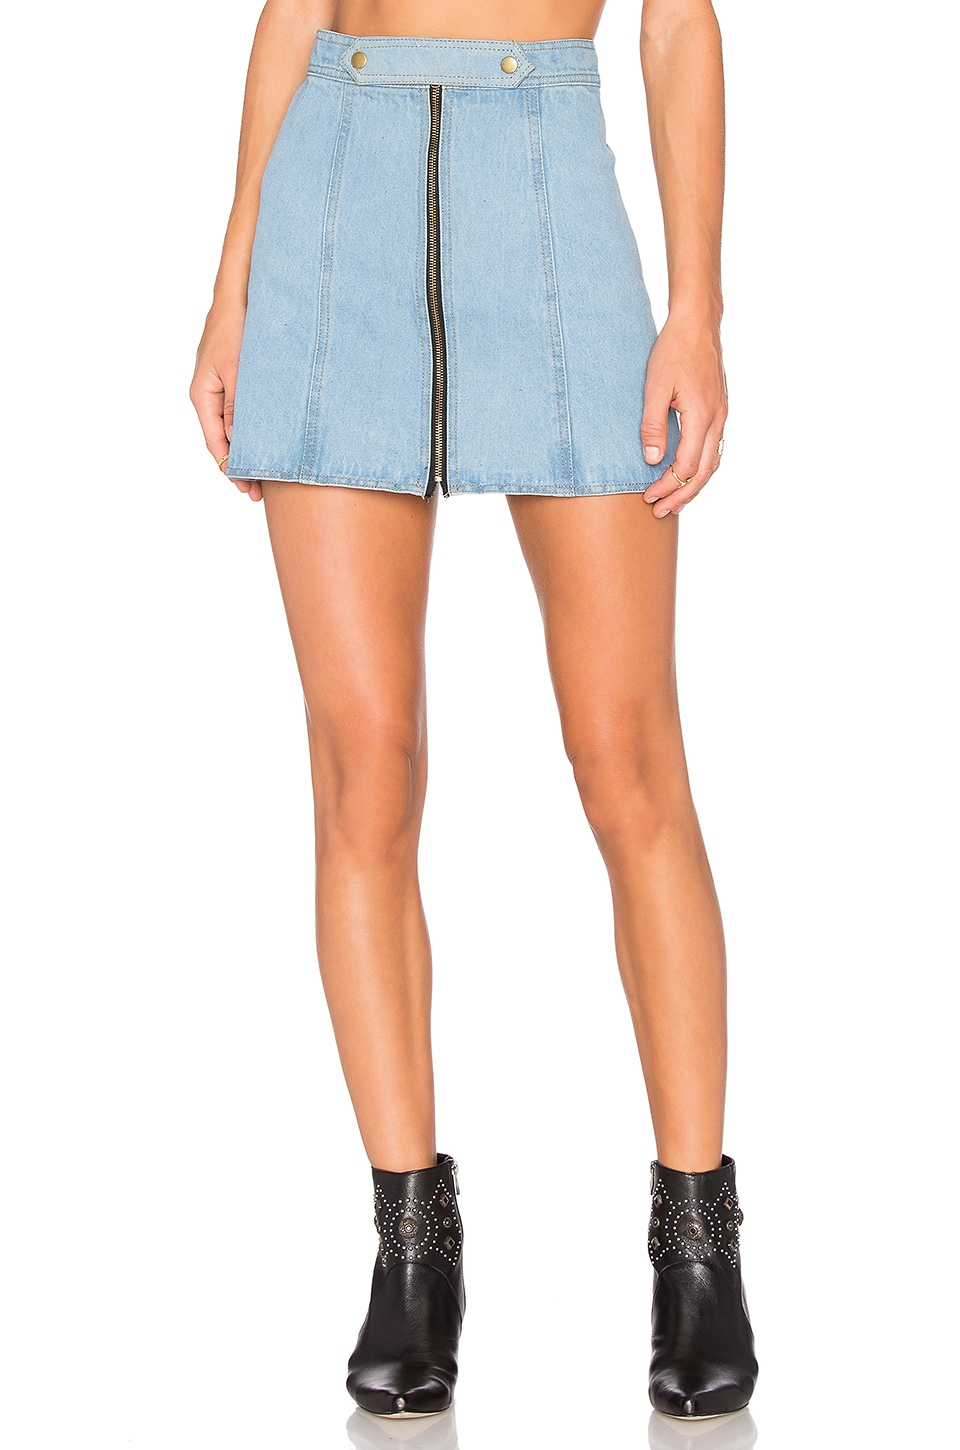 Understated Leather x REVOLVE High Waist Zip Skirt in Sky Blue & Acid Wash